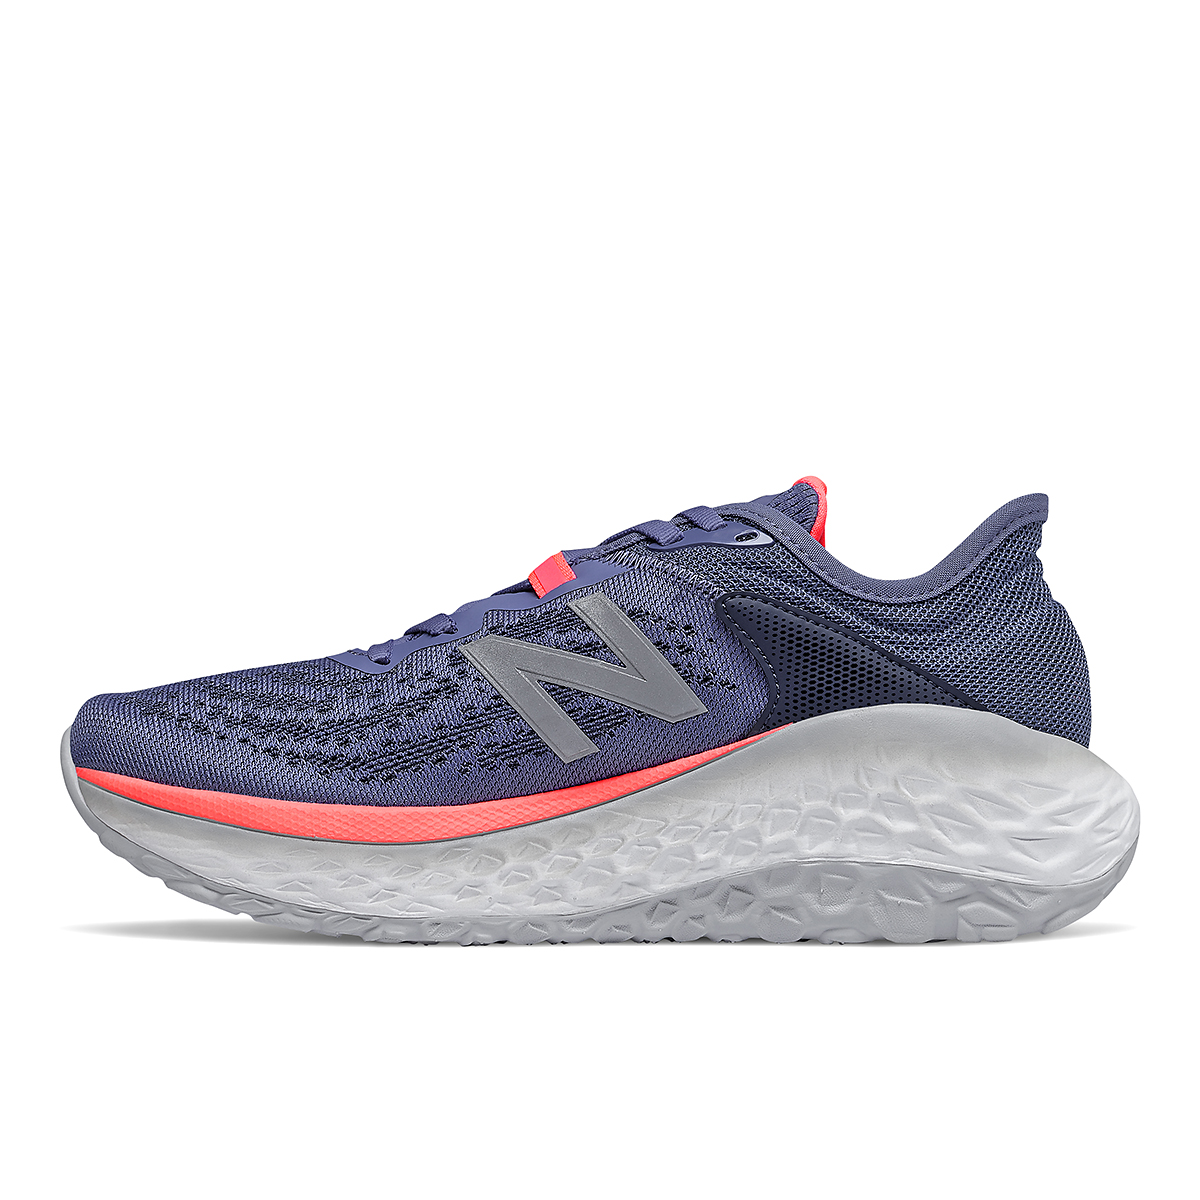 Women's New Balance Fresh Foam More V2 Running Shoe - Color: Magnetic Blue - Size: 5 - Width: Extra Wide, Magnetic Blue, large, image 2